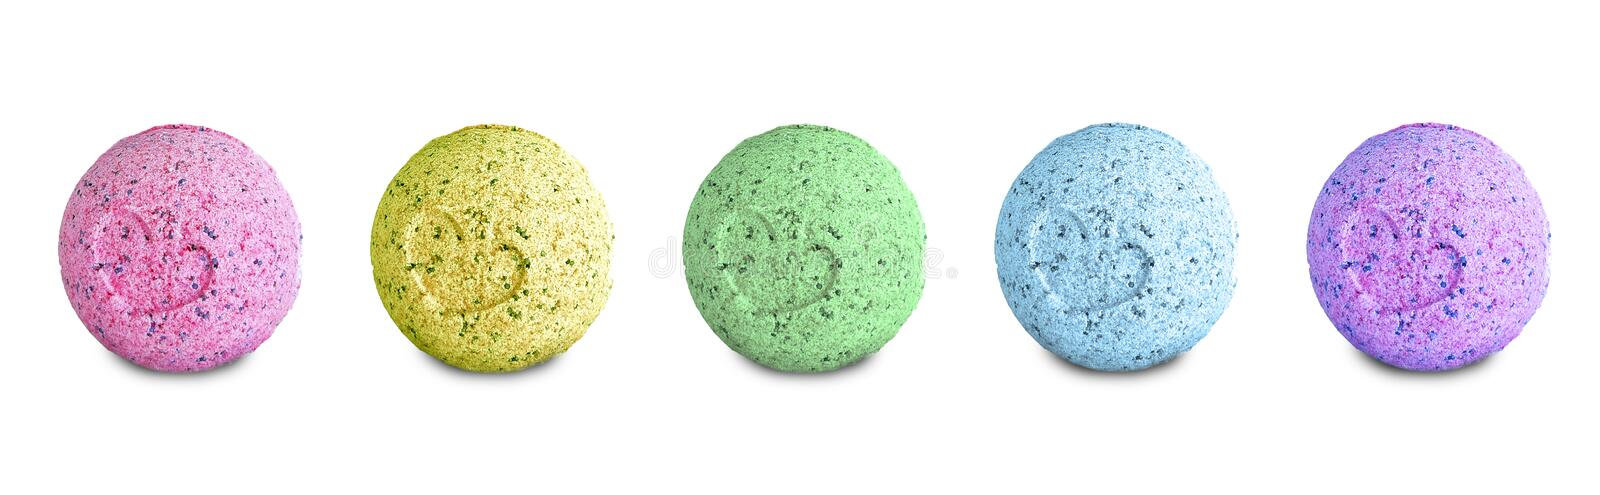 Set of colored bath bombs isolated on white background. stock photo